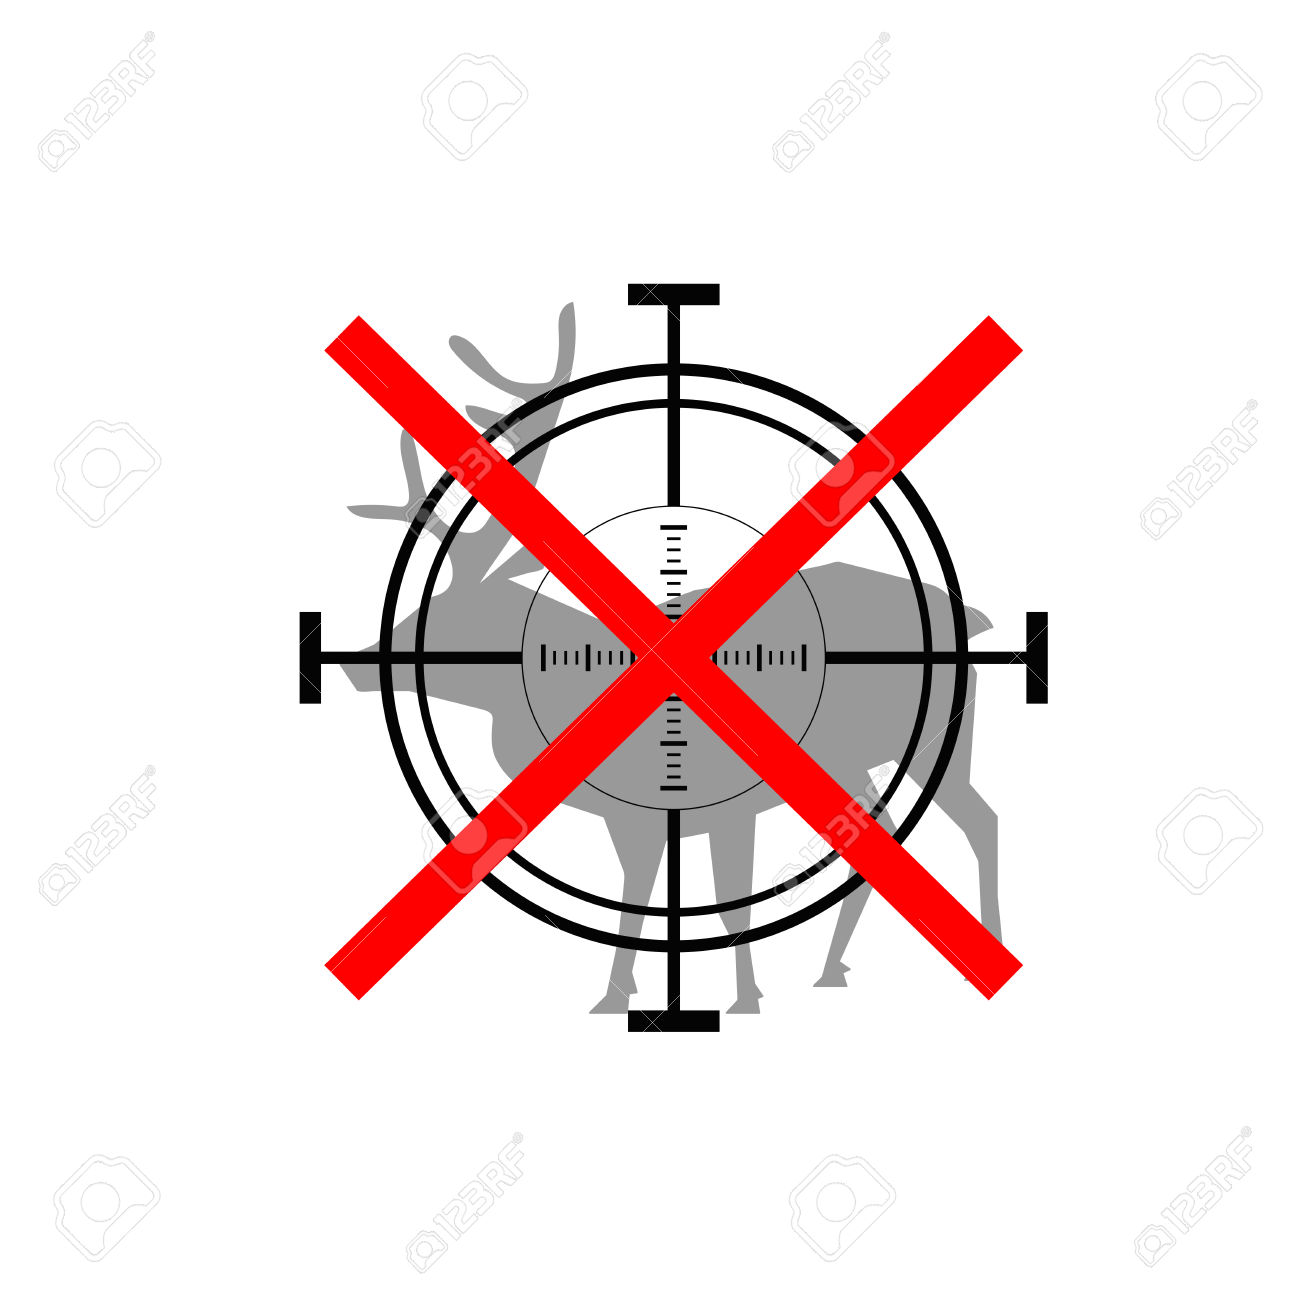 Sign Of Prohibited Hunting Deer With Crosshair Royalty Free.